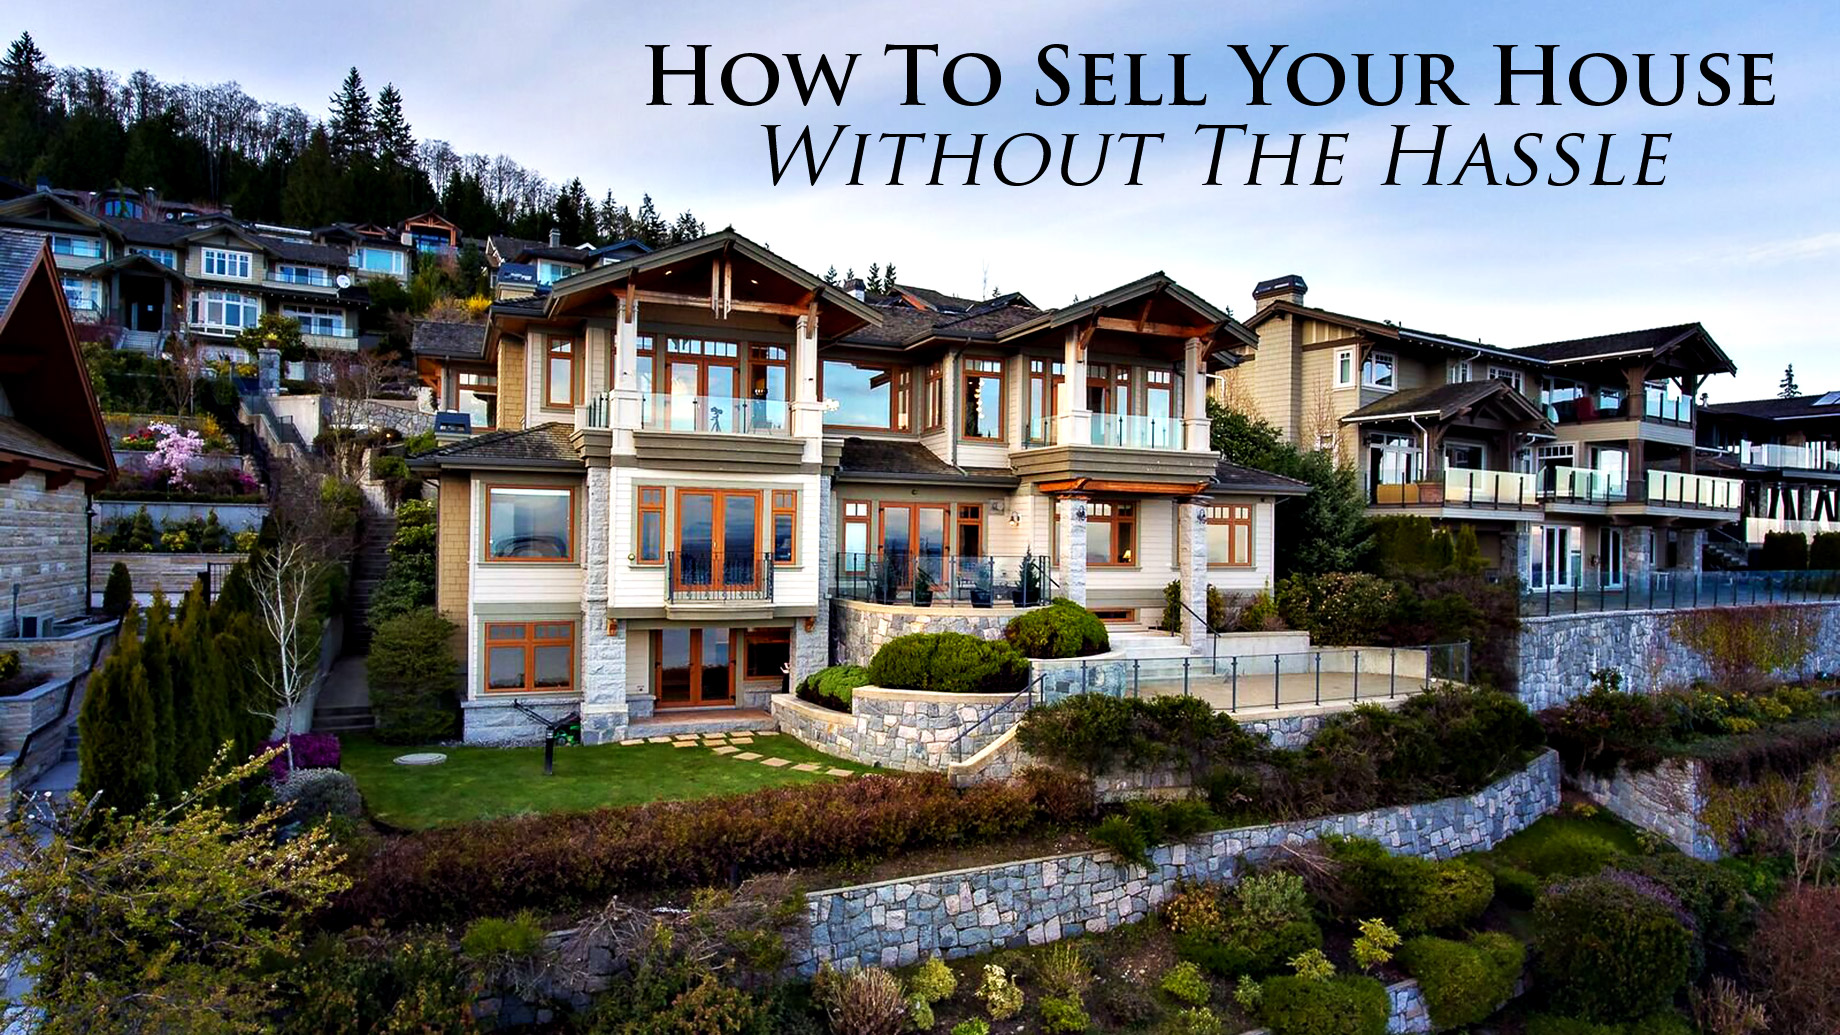 Real Estate Tips - How To Sell Your House Without The Hassle